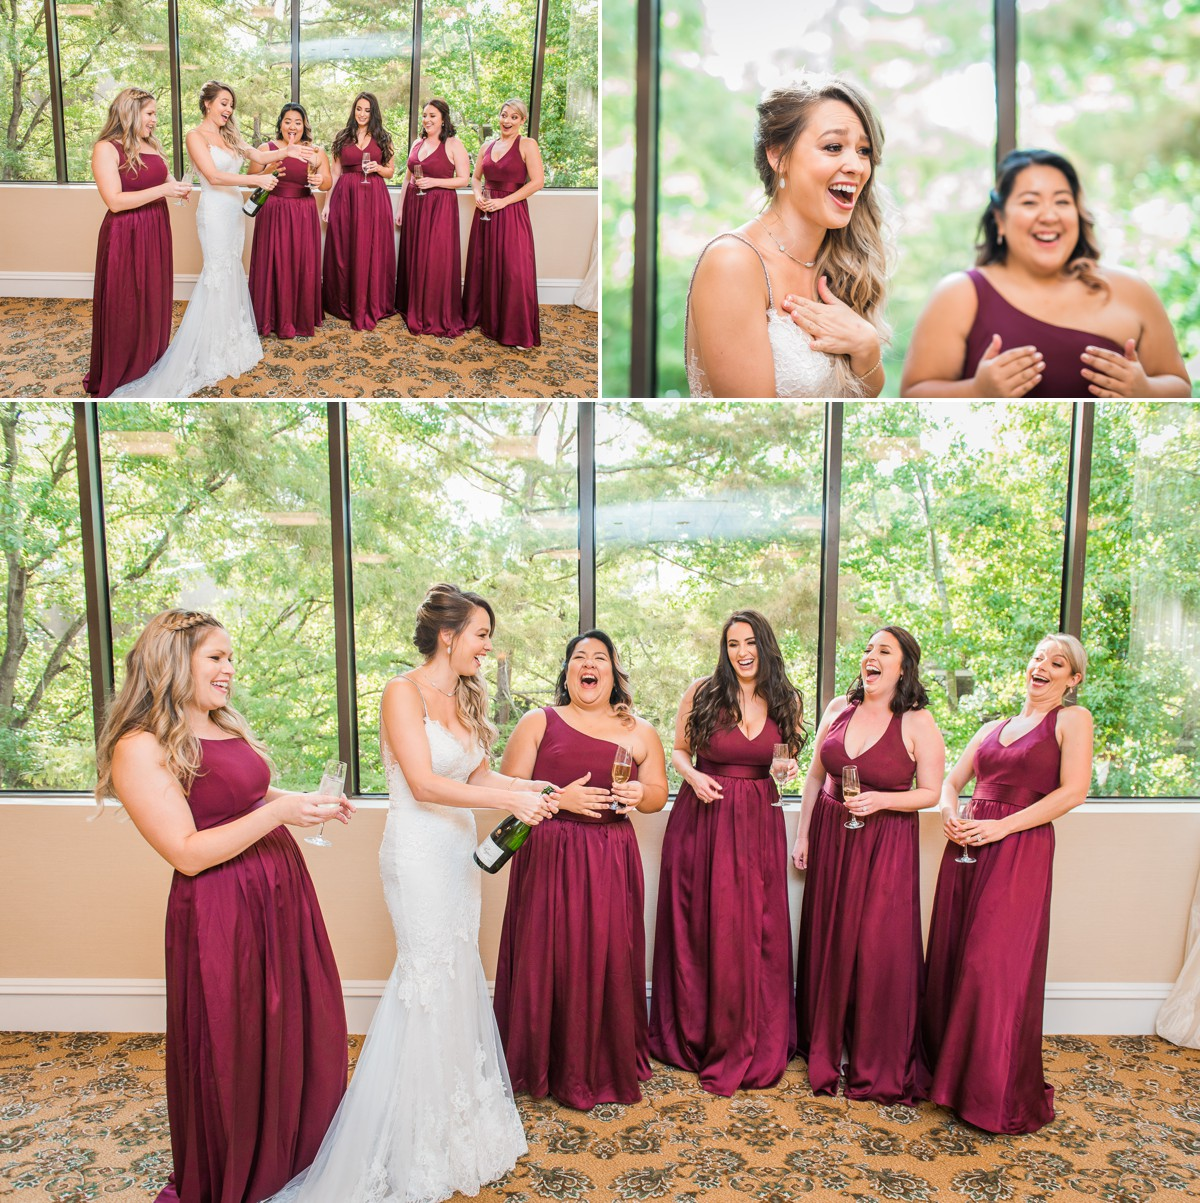 Manor House Wedding at The Houstonian Hotel Bridesmaids toast